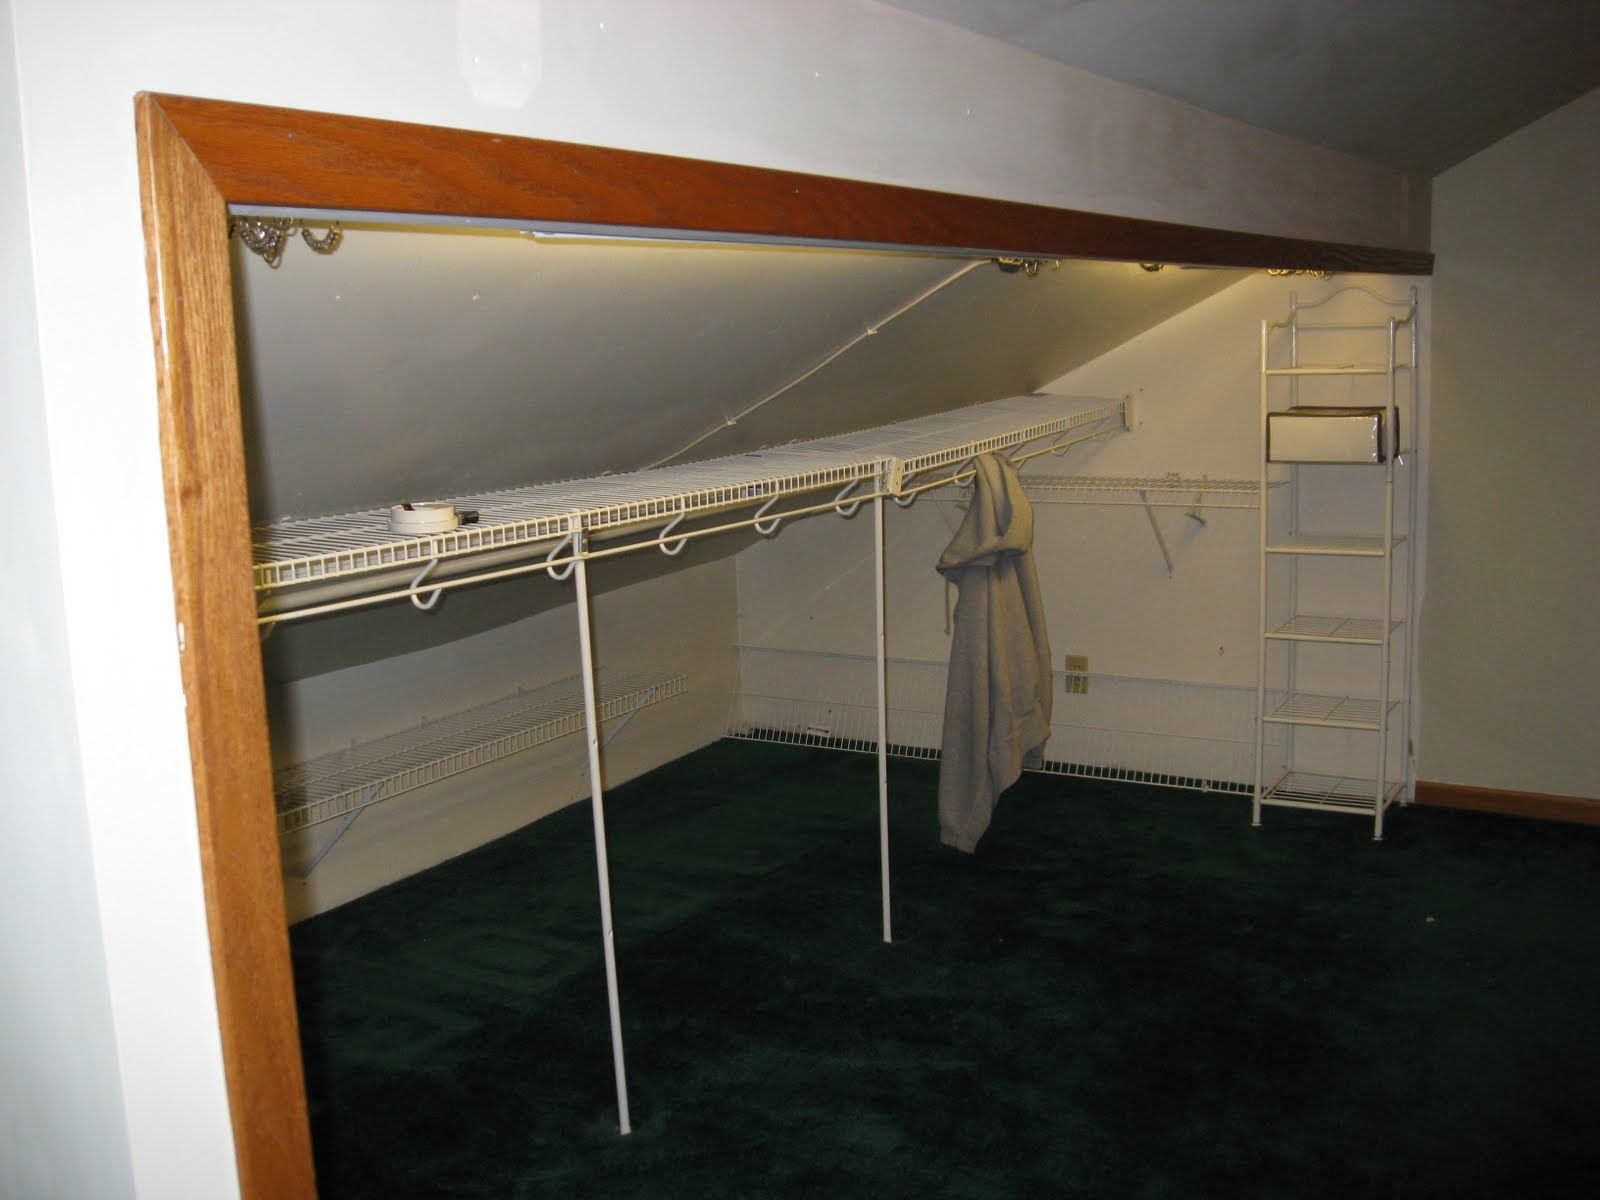 knee wall closet ideas Google Search Home Improvement Ideas